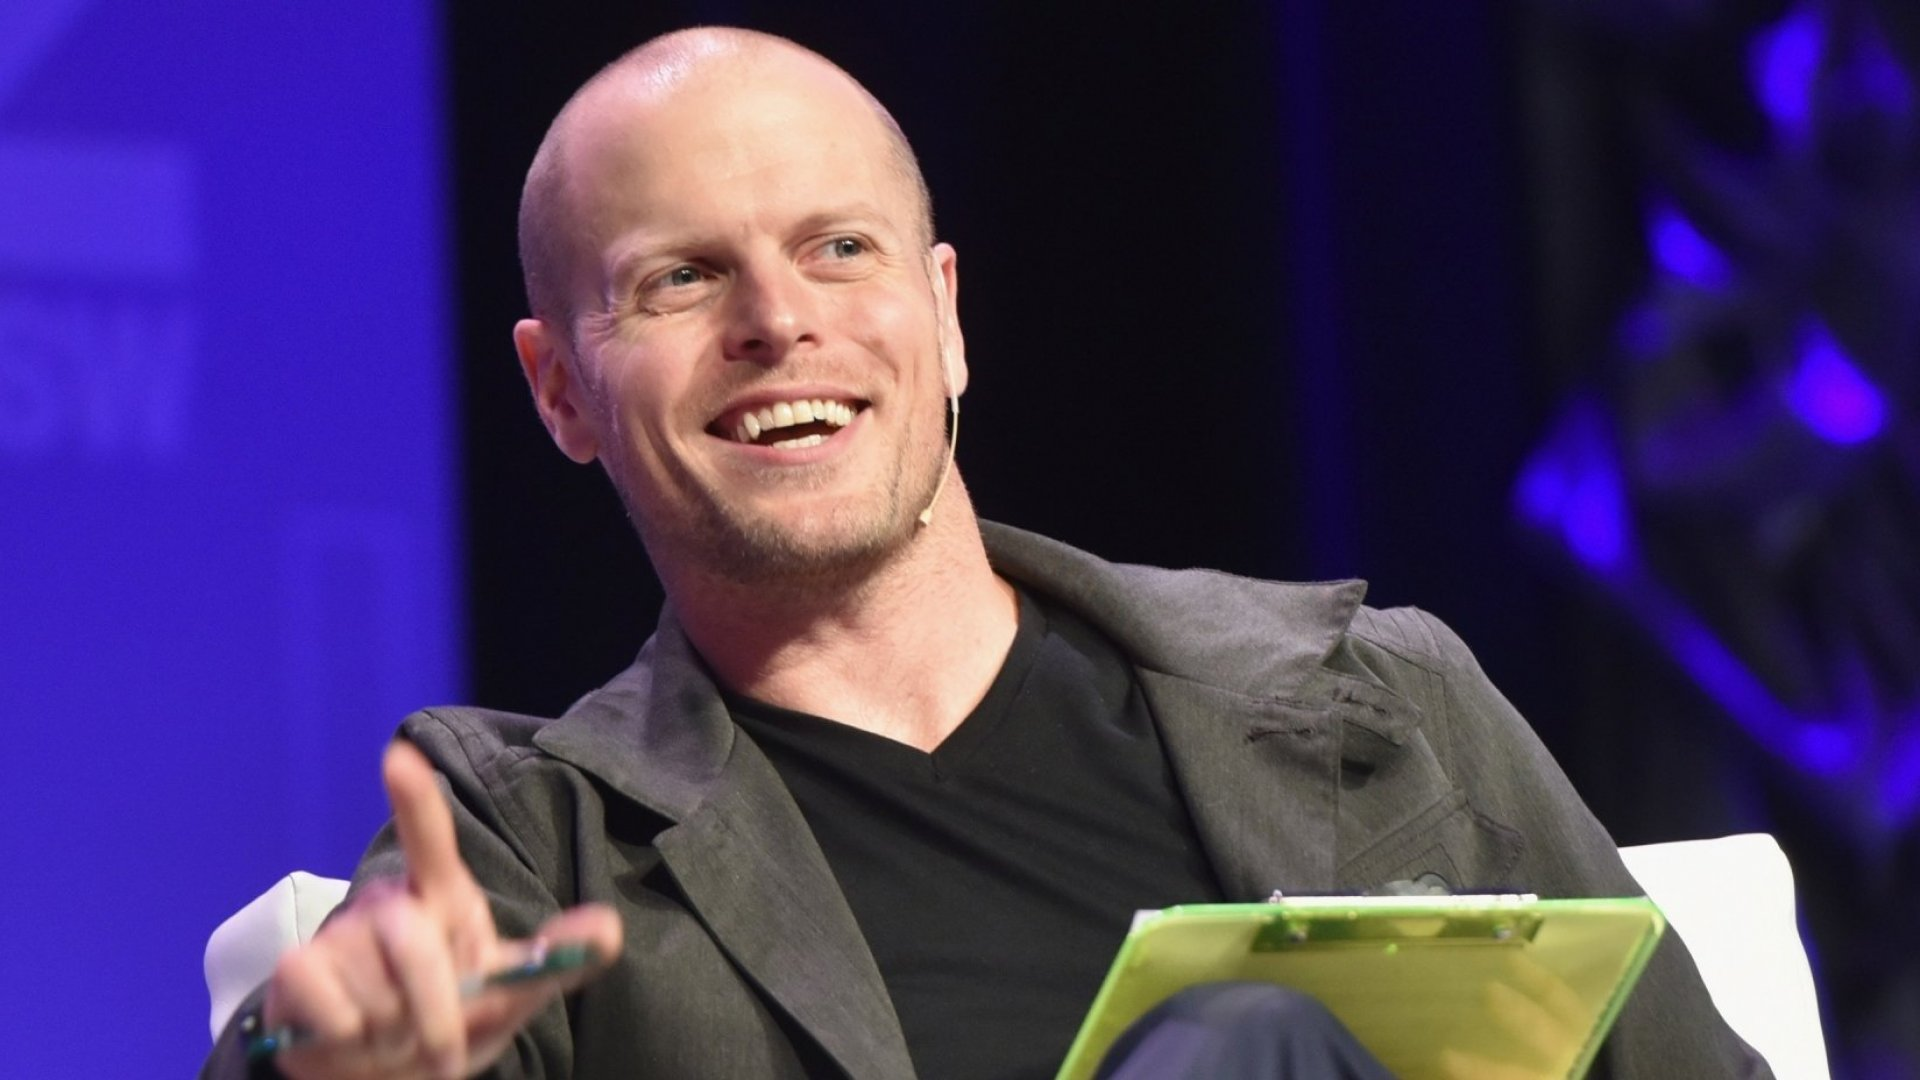 Tim Ferriss Just Listed 5 Books Every Entrepreneur Should Read